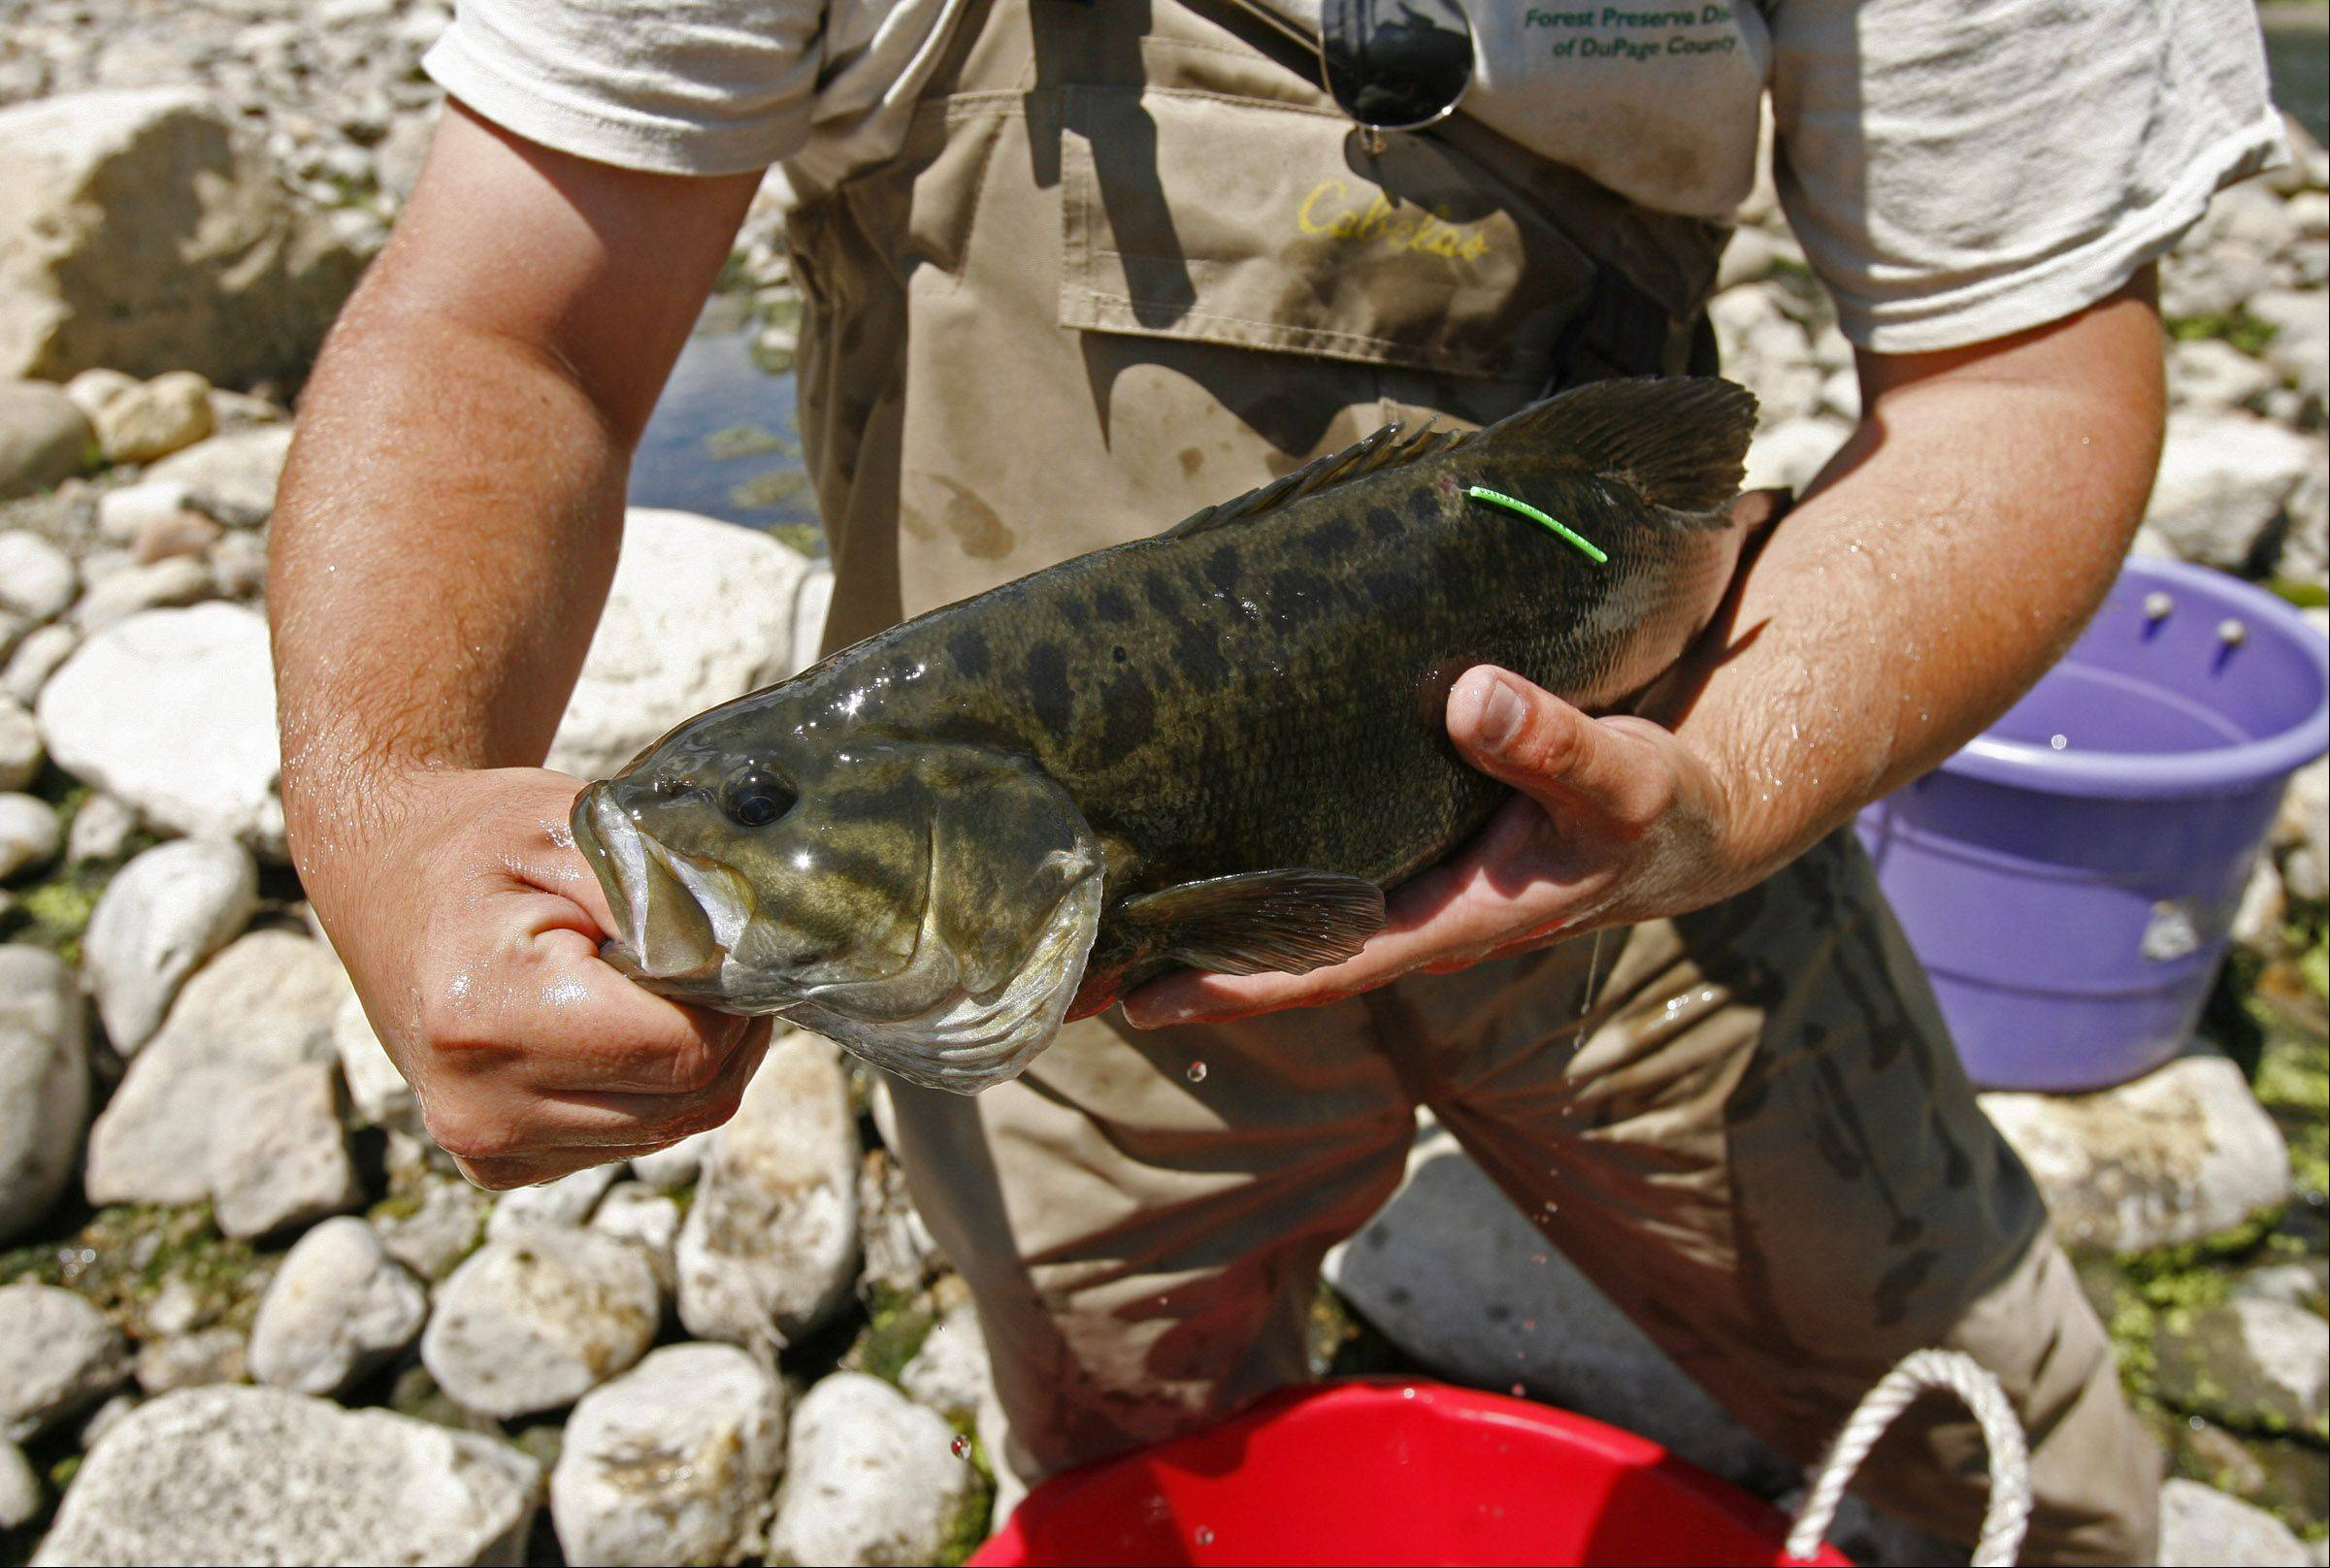 Aquatic technician Jim Intihar prepares to release a smallmouth bass at the Warrenville Grove Forest Preserve.